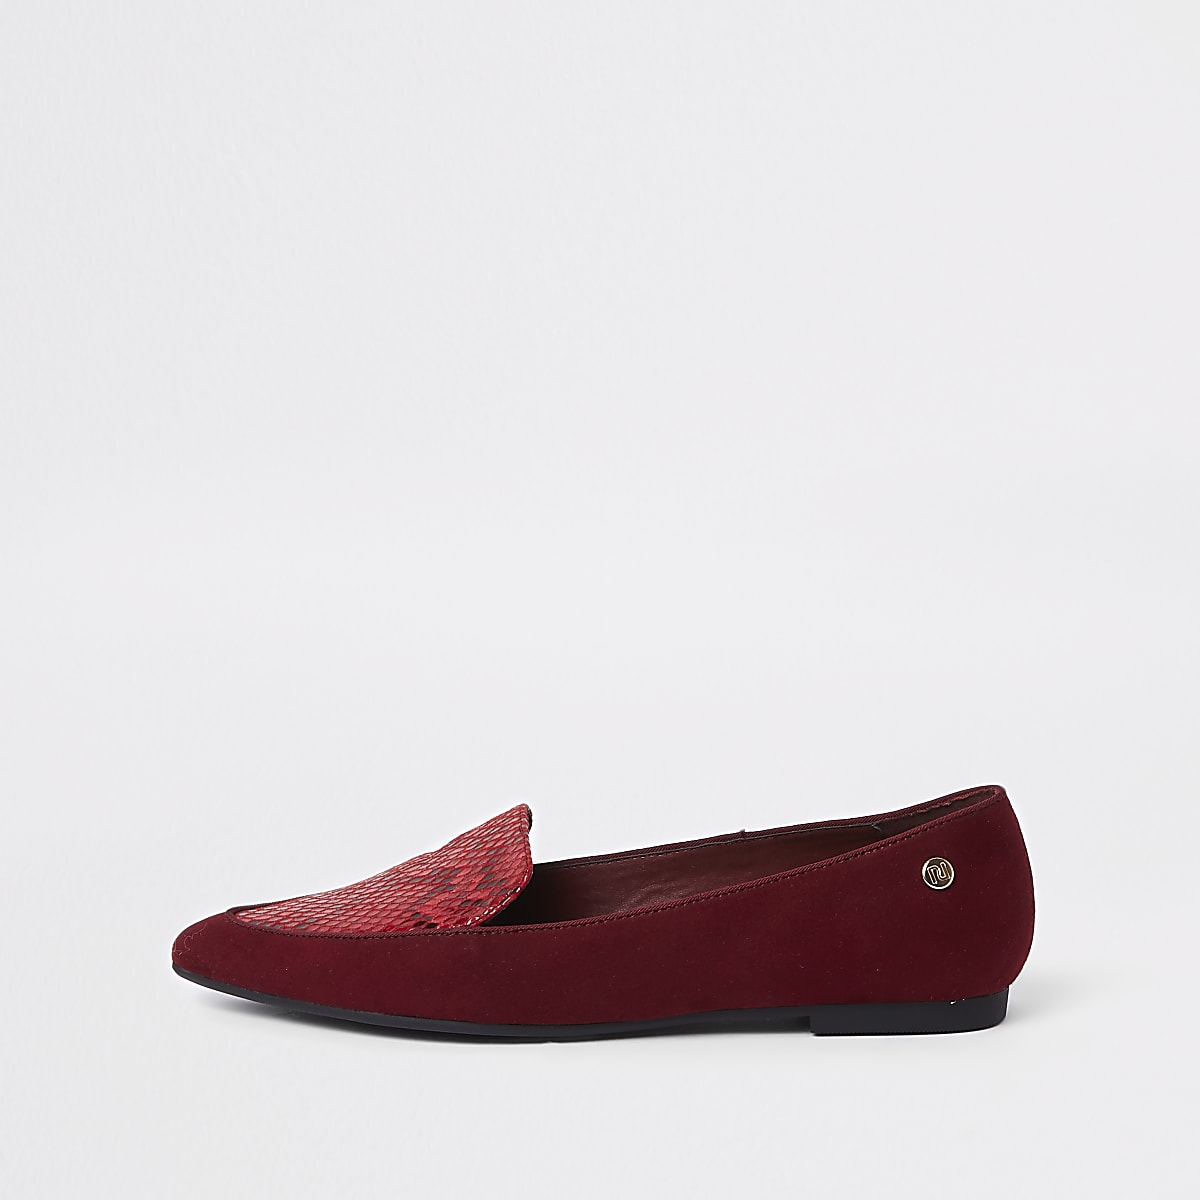 Red pointed toe wide fit loafers